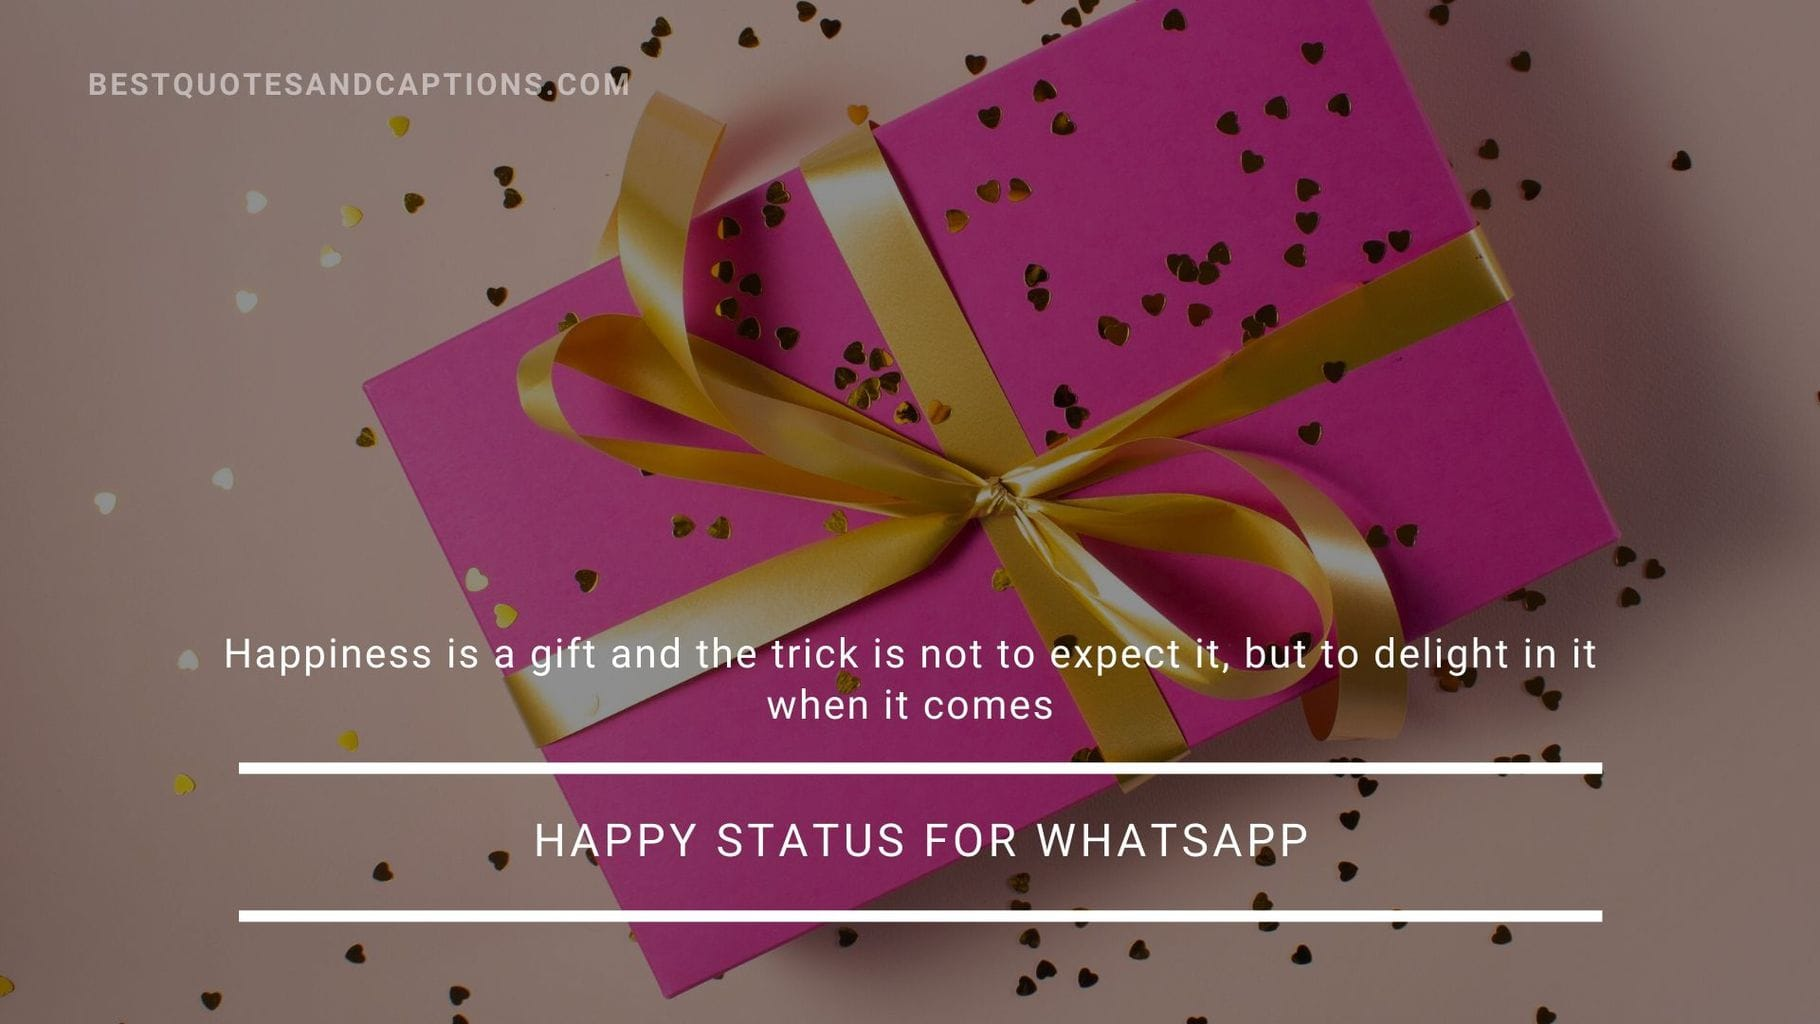 Happy Status for Whatsapp in Englis